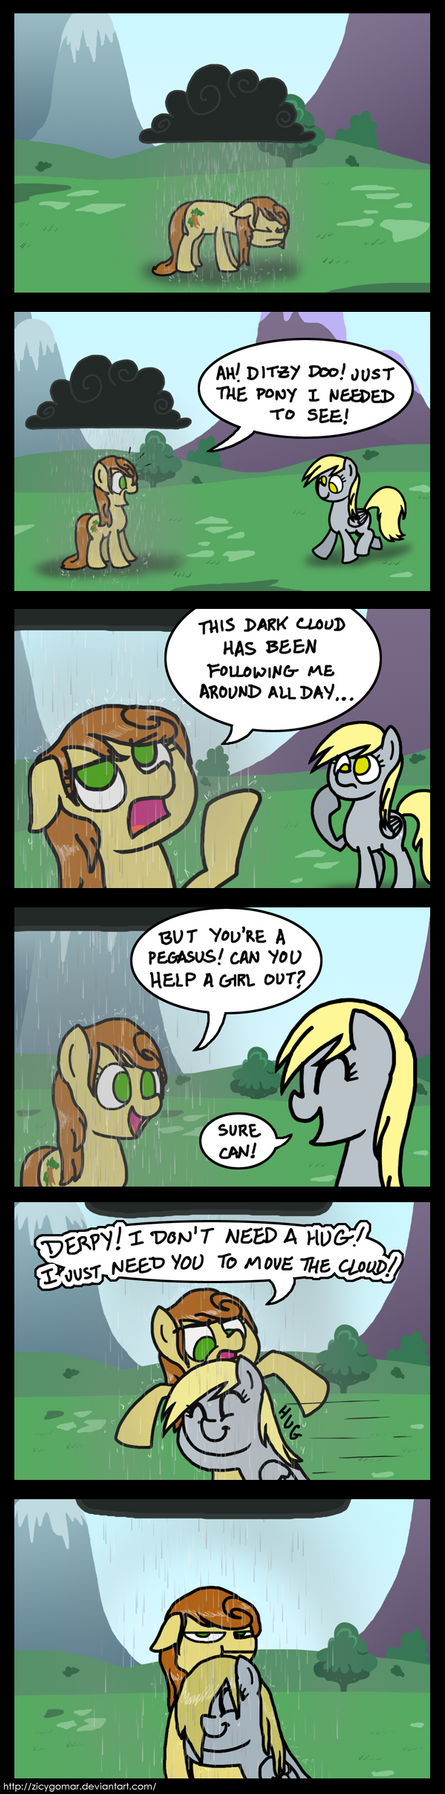 Cloudy with a Chance of Hugs by Zicygomar